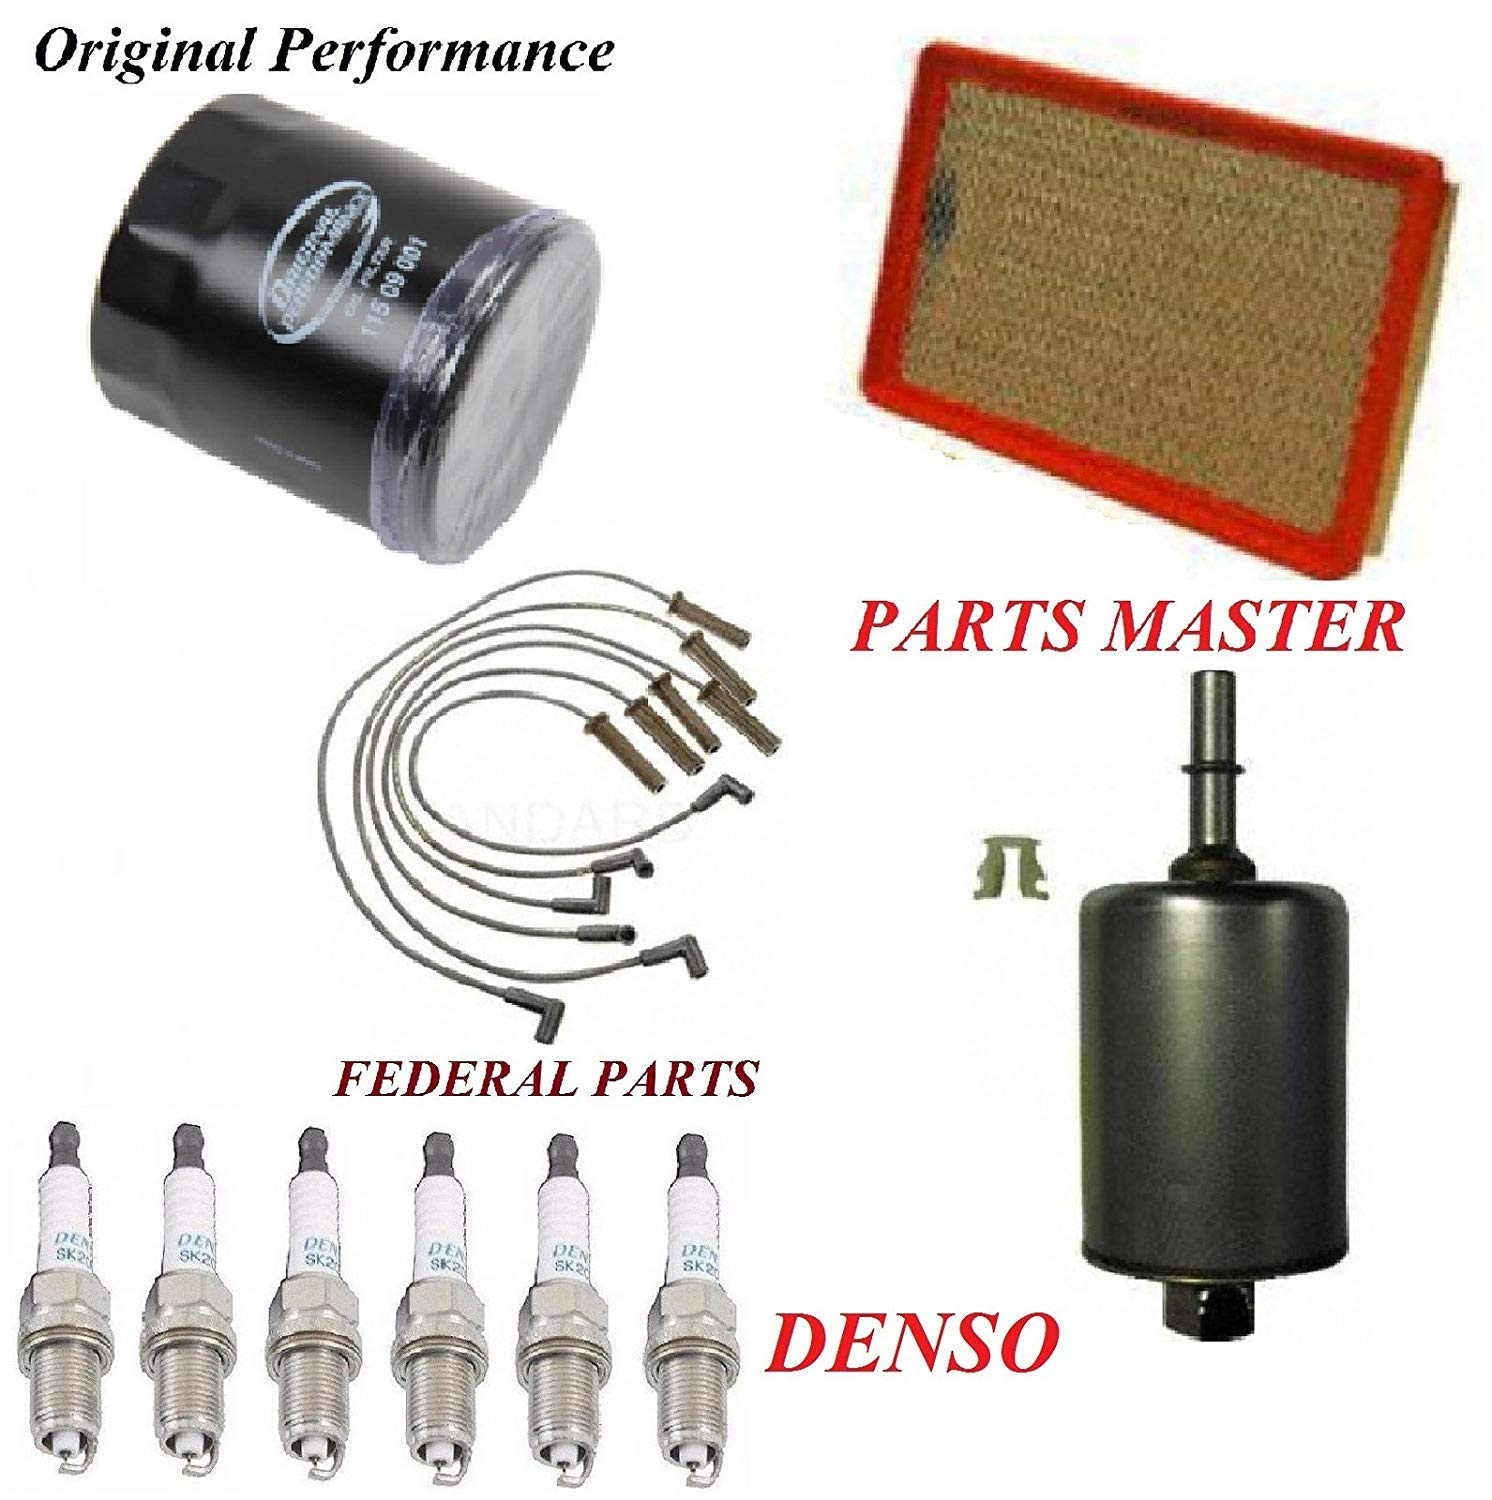 Tune Up Kit Air Oil Fuel Filters Wire Spark Plug FIT PONTIAC GRAND AM V6; 3.4L 2004-2005